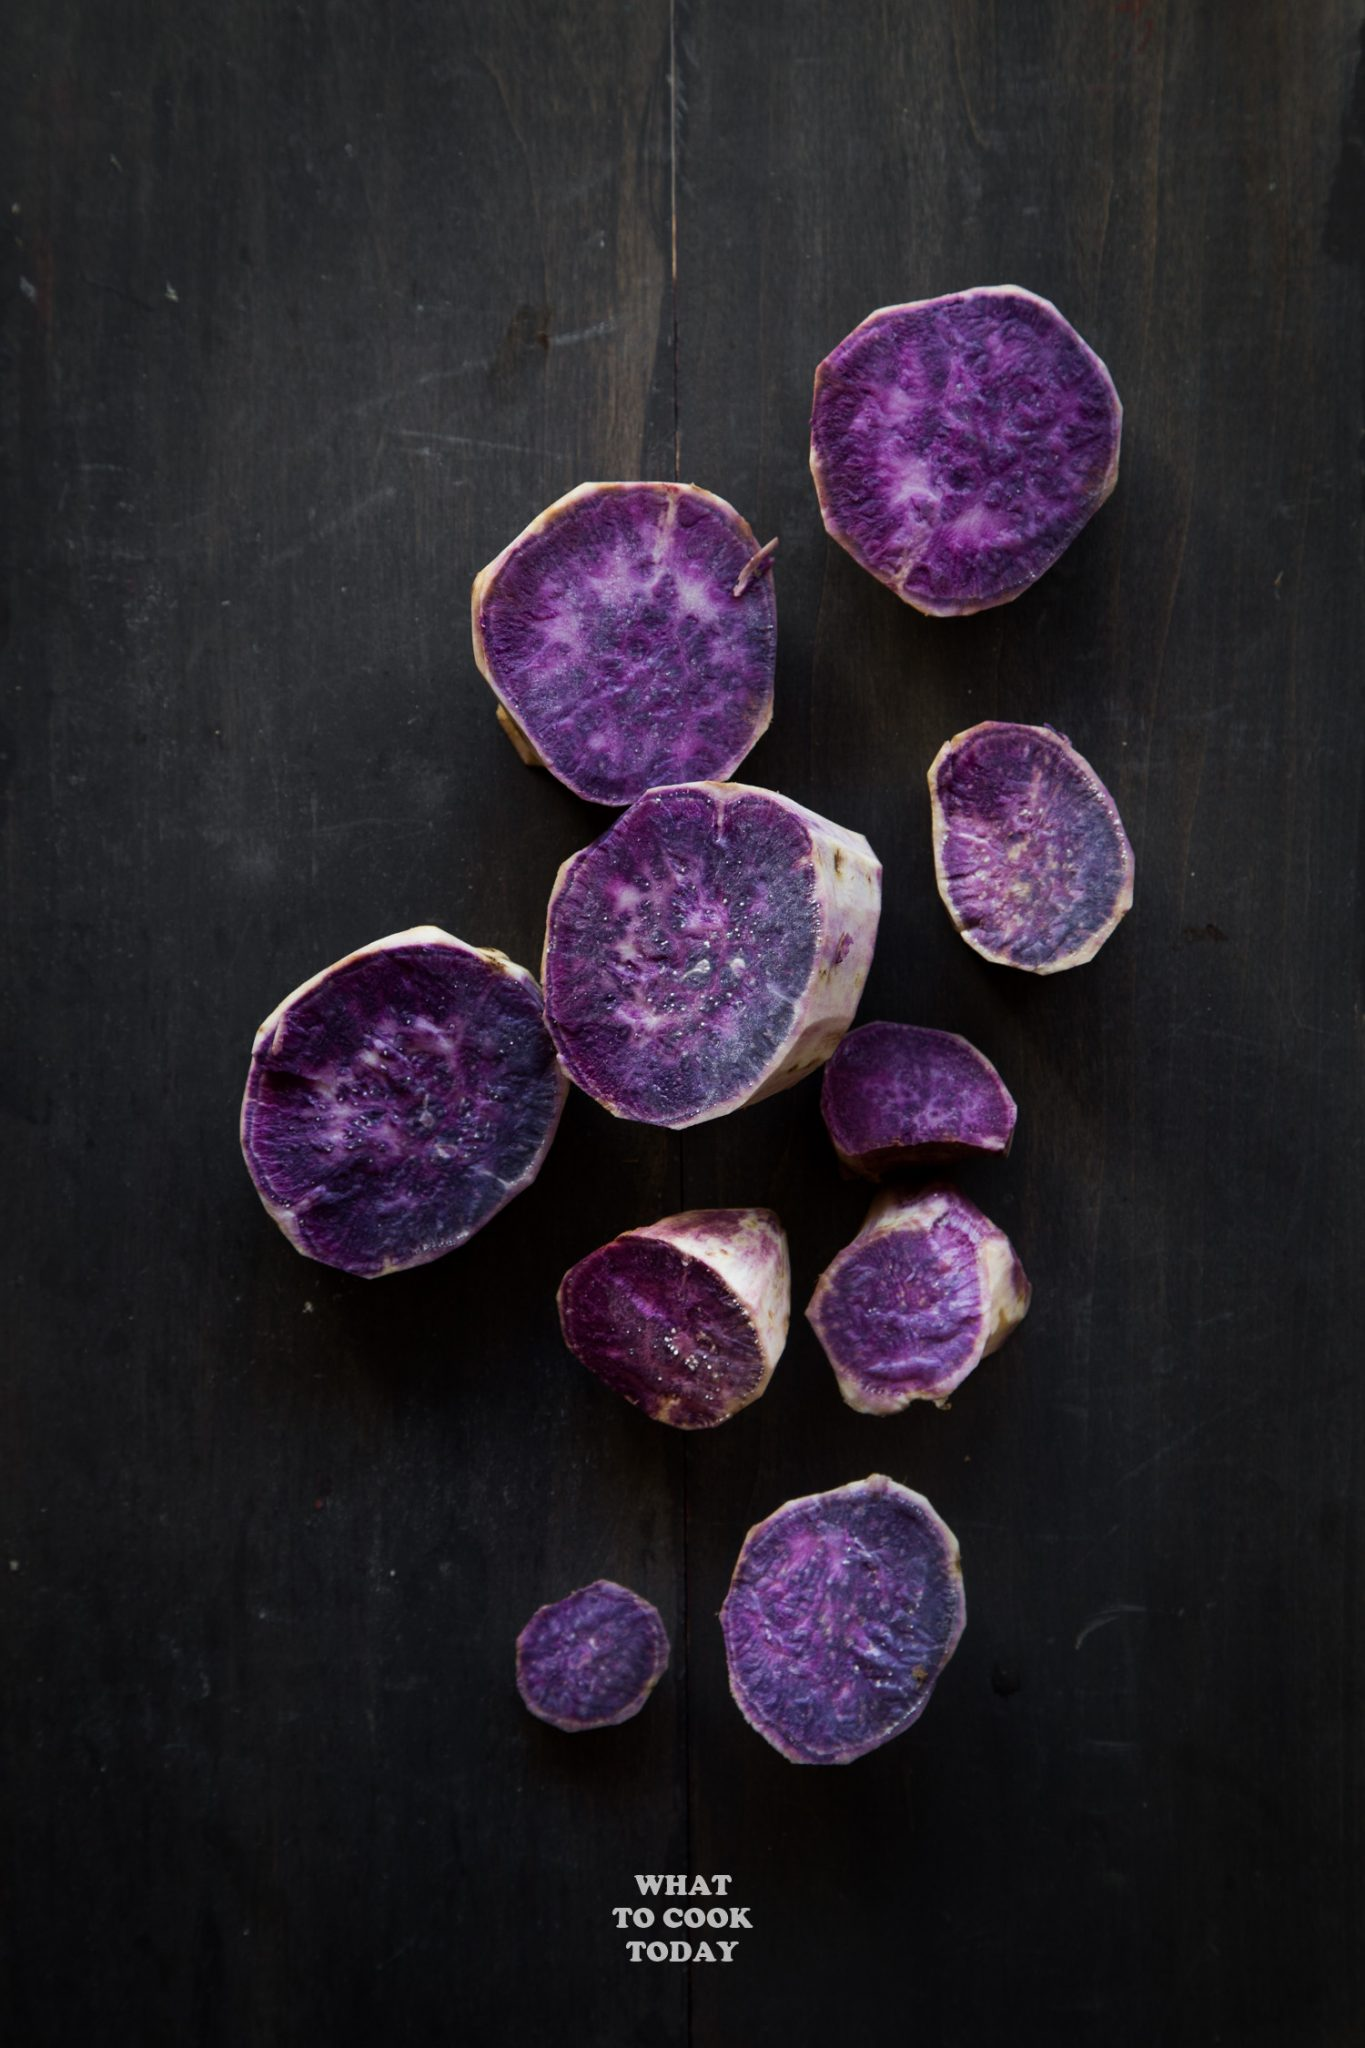 Okinawan Purple Sweet Potatoes